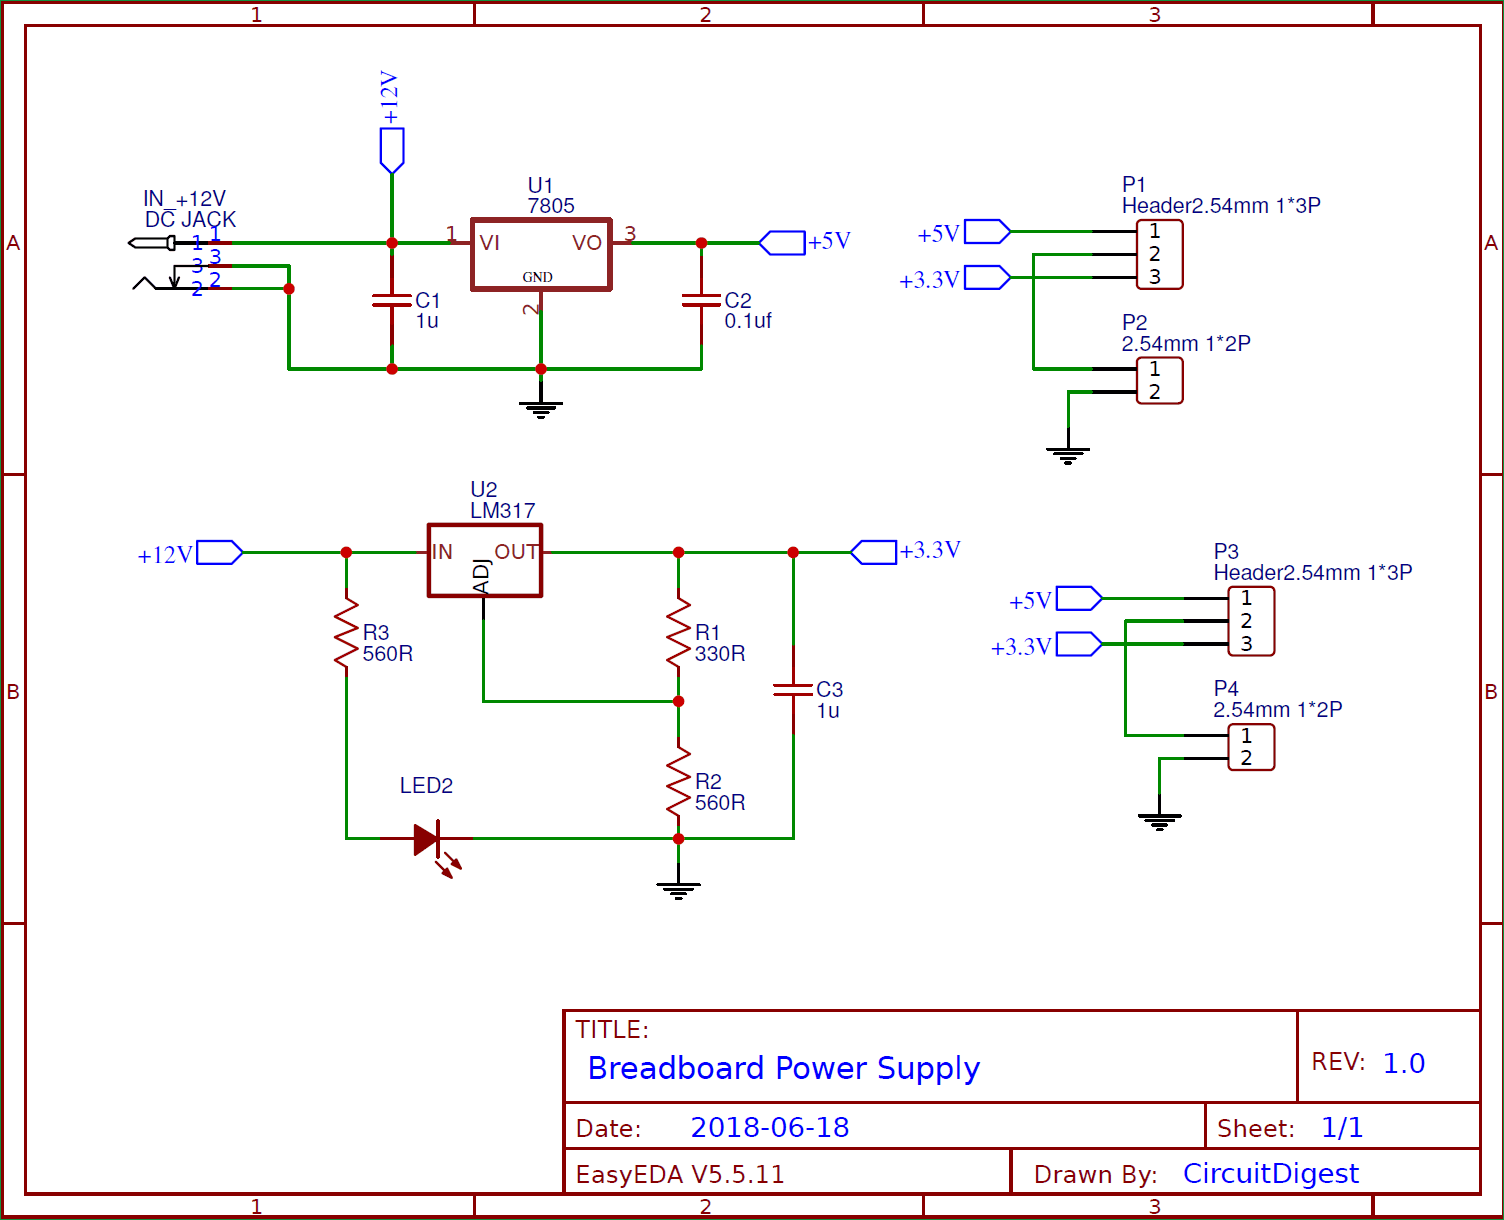 hight resolution of circuit diagram for diy breadboard power supply circuit on pcb